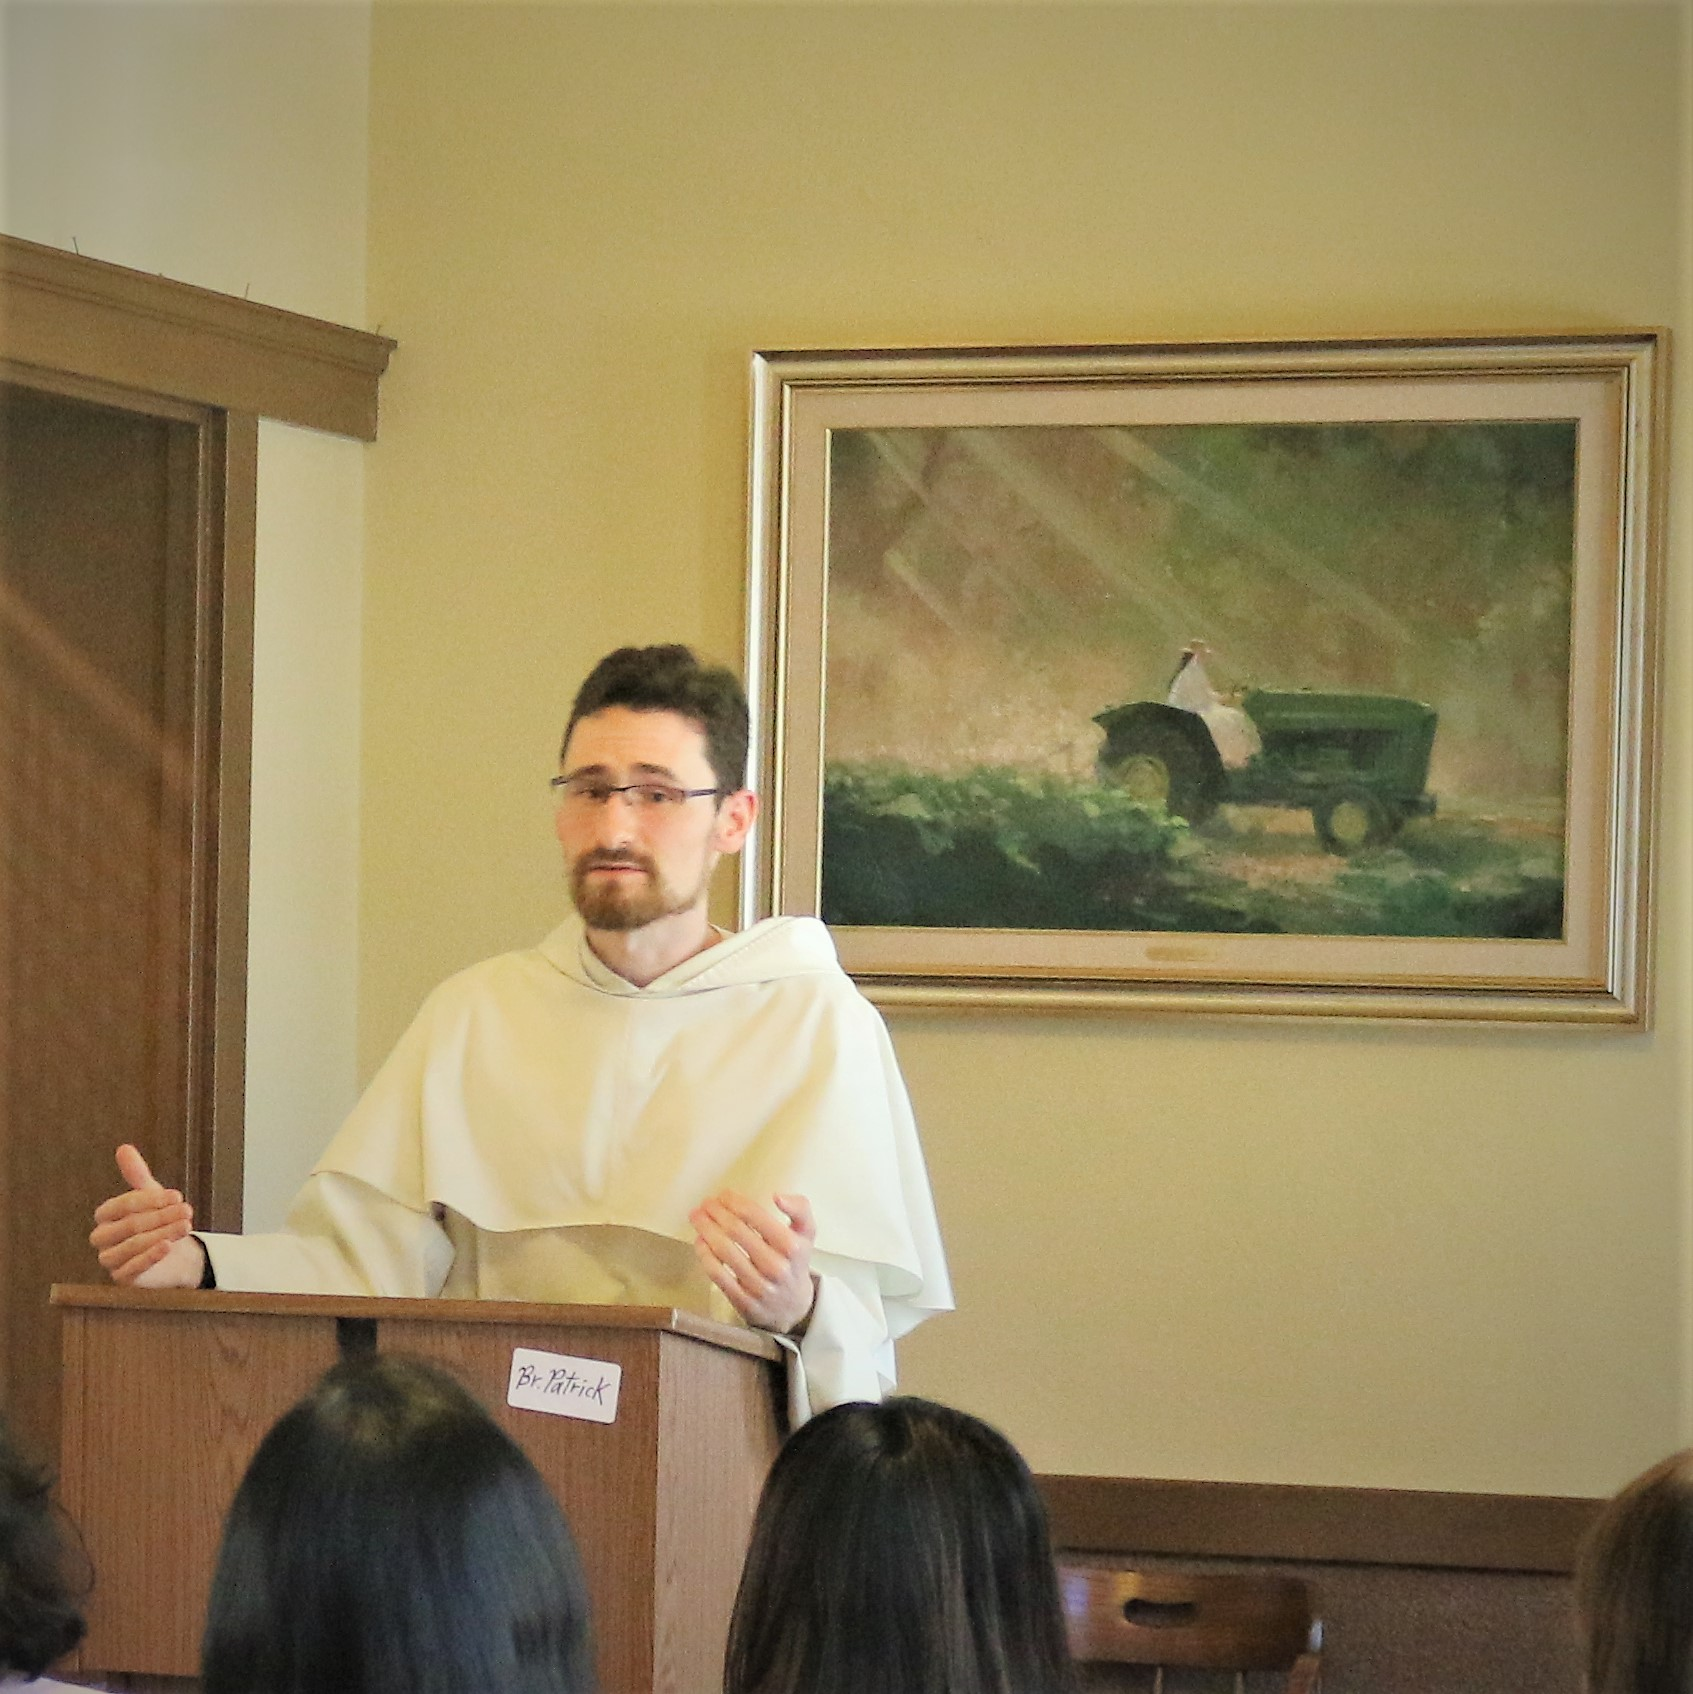 Brother Patrick Rooney, O.P. of the Western Dominican Province